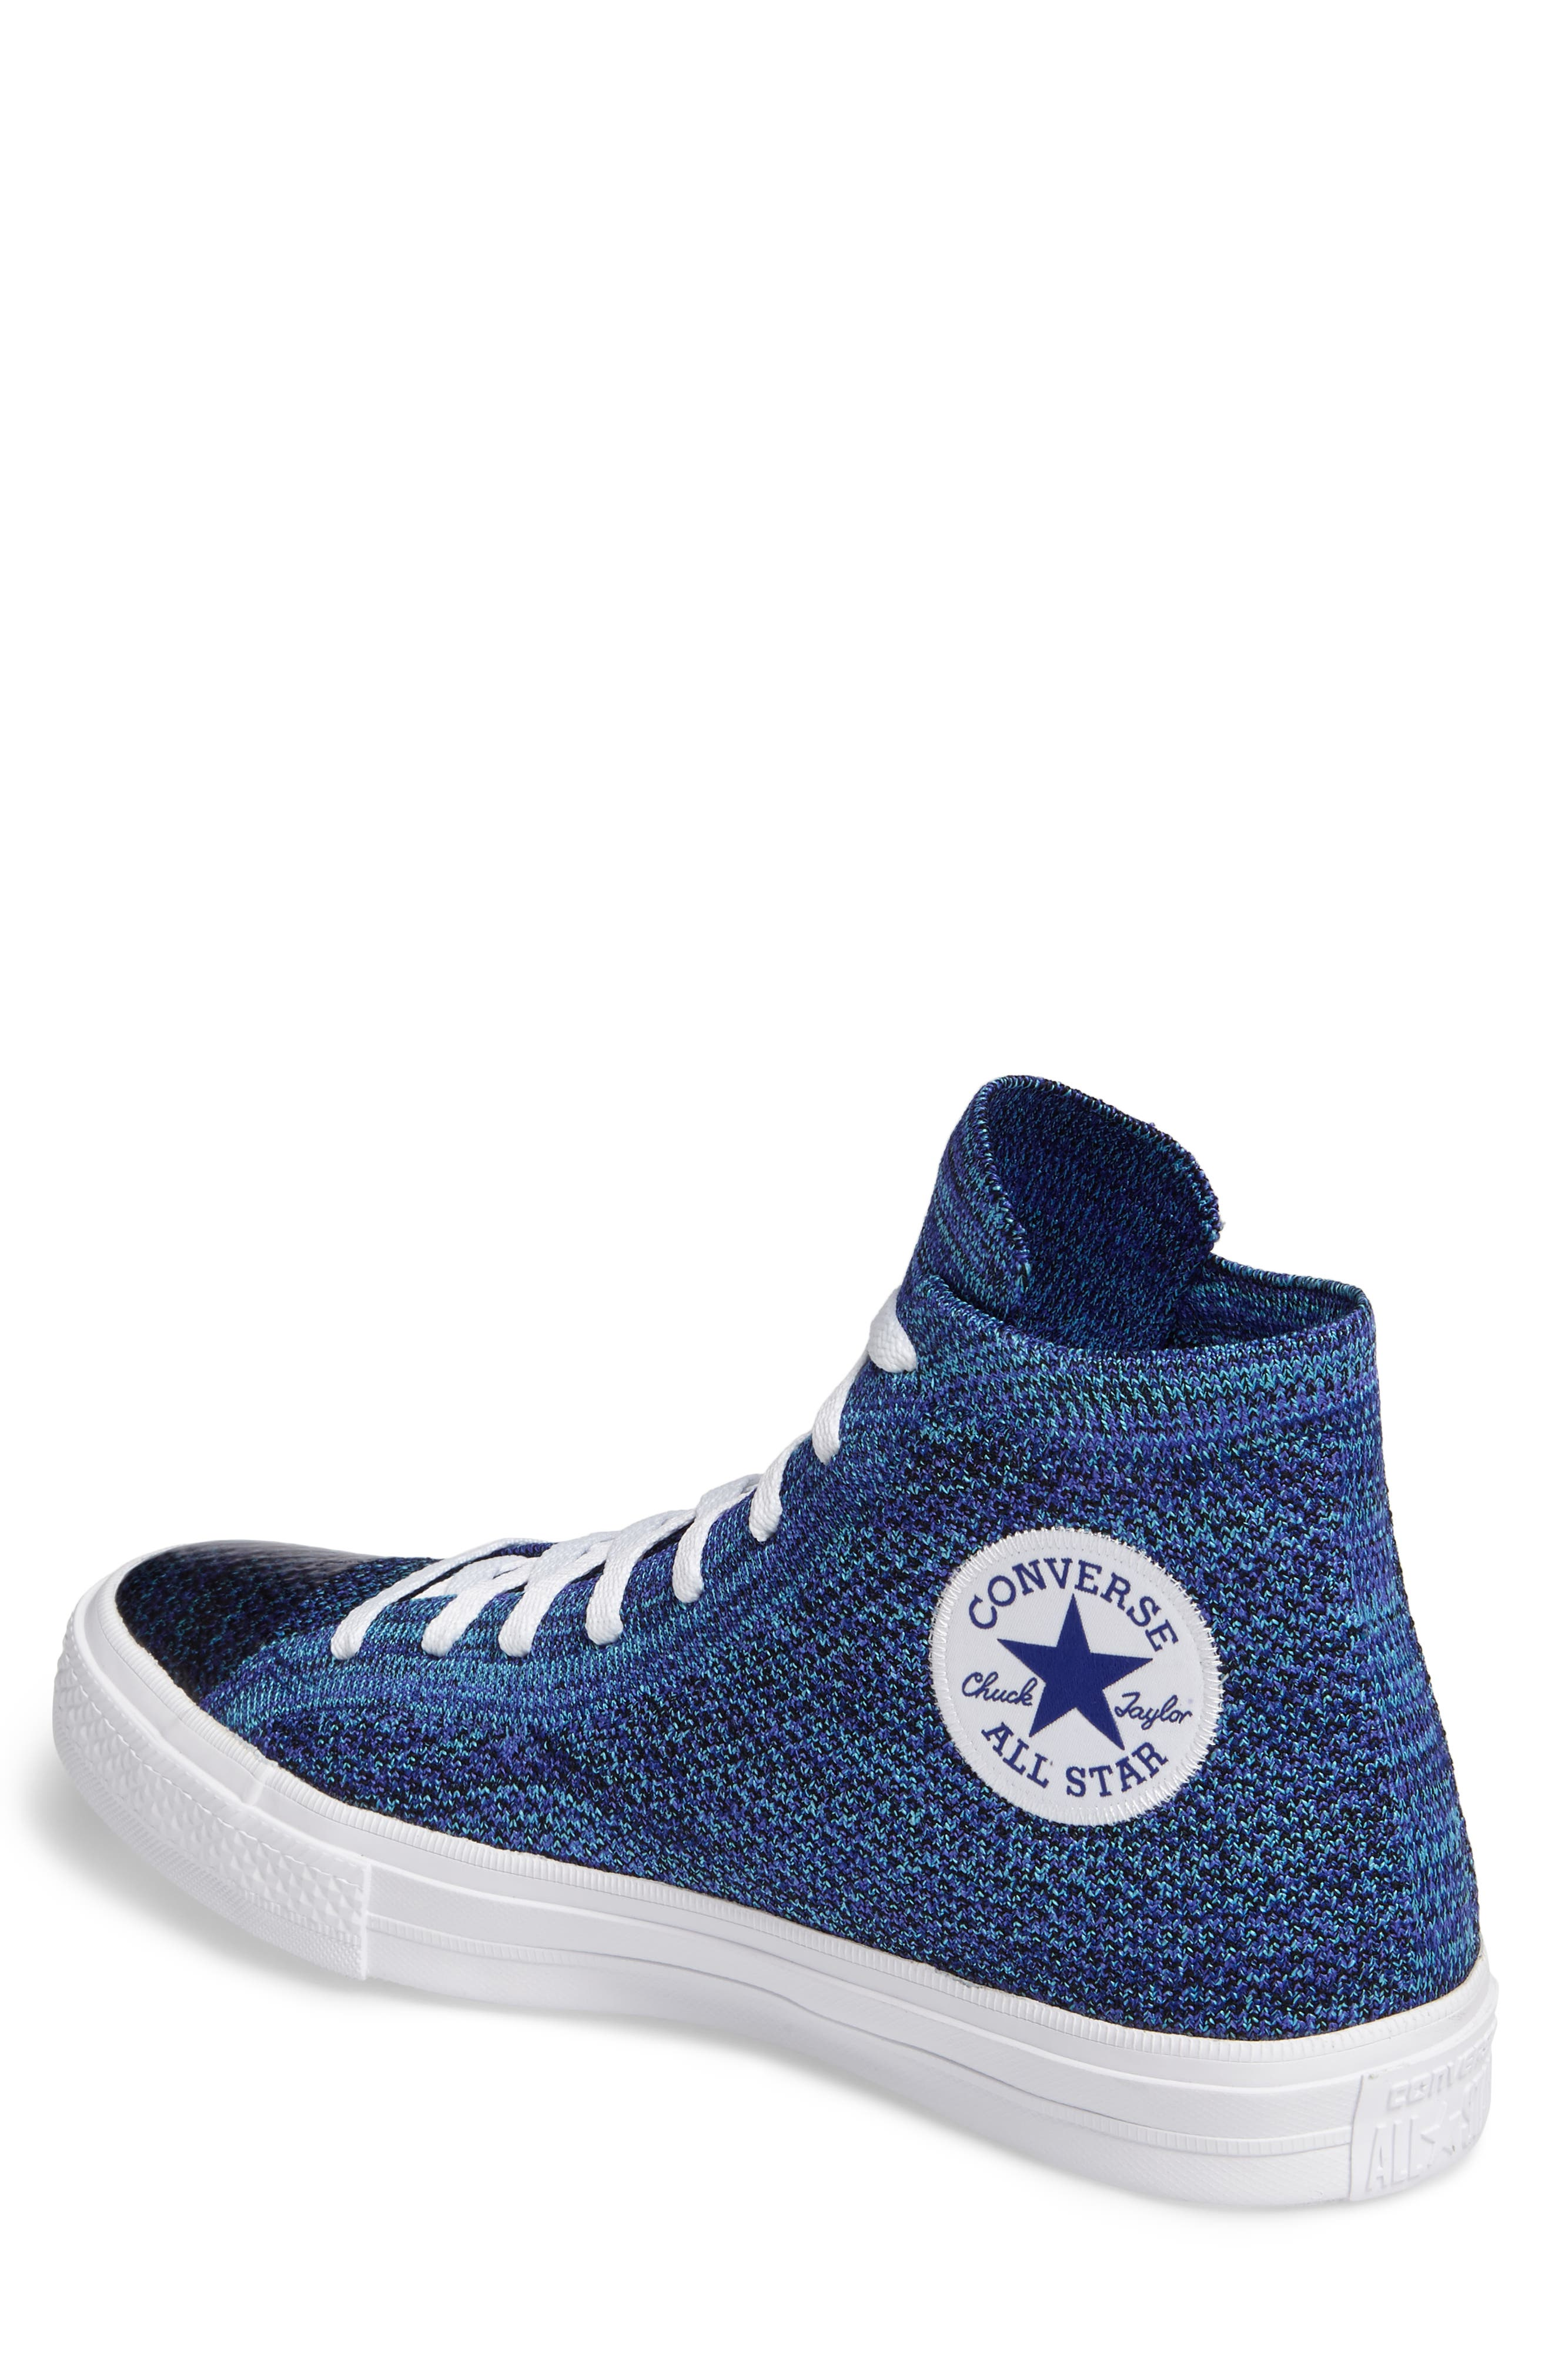 Chuck Taylor<sup>®</sup> All Star<sup>®</sup> Flyknit Hi Sneaker,                             Alternate thumbnail 12, color,